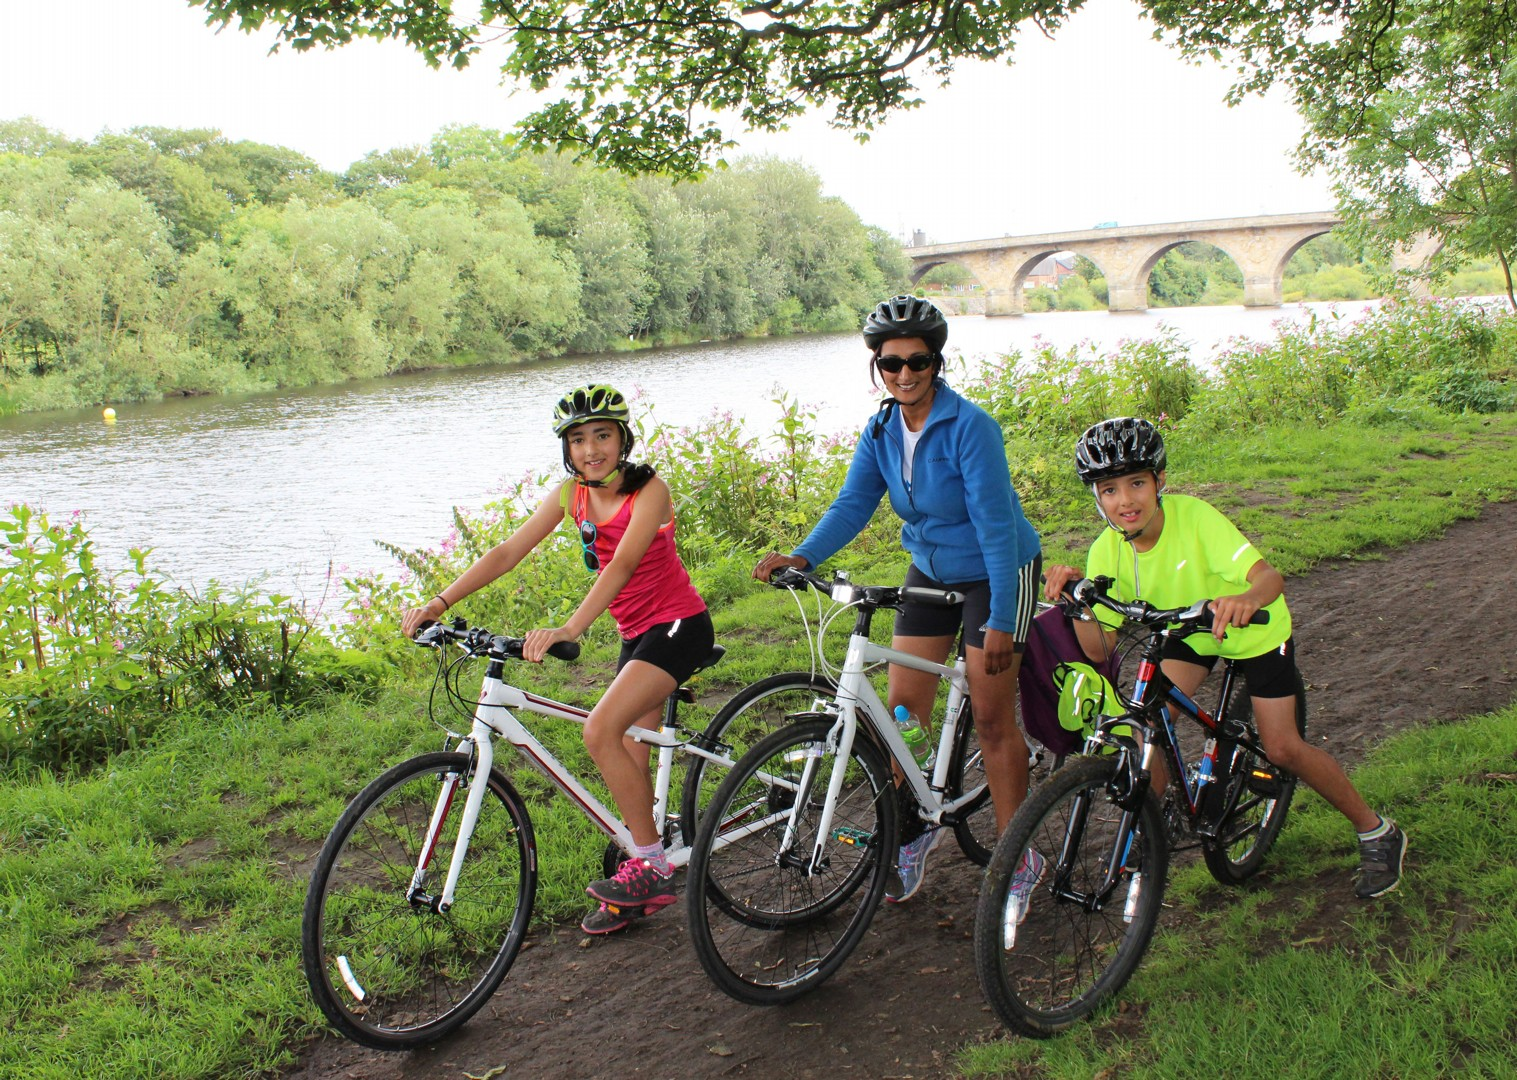 hadrians-explorer-uk-family-cycling-holiday.jpg - UK - Highlights of Hadrian's Cycleway - Self-Guided Family Cycling Holiday - Family Cycling